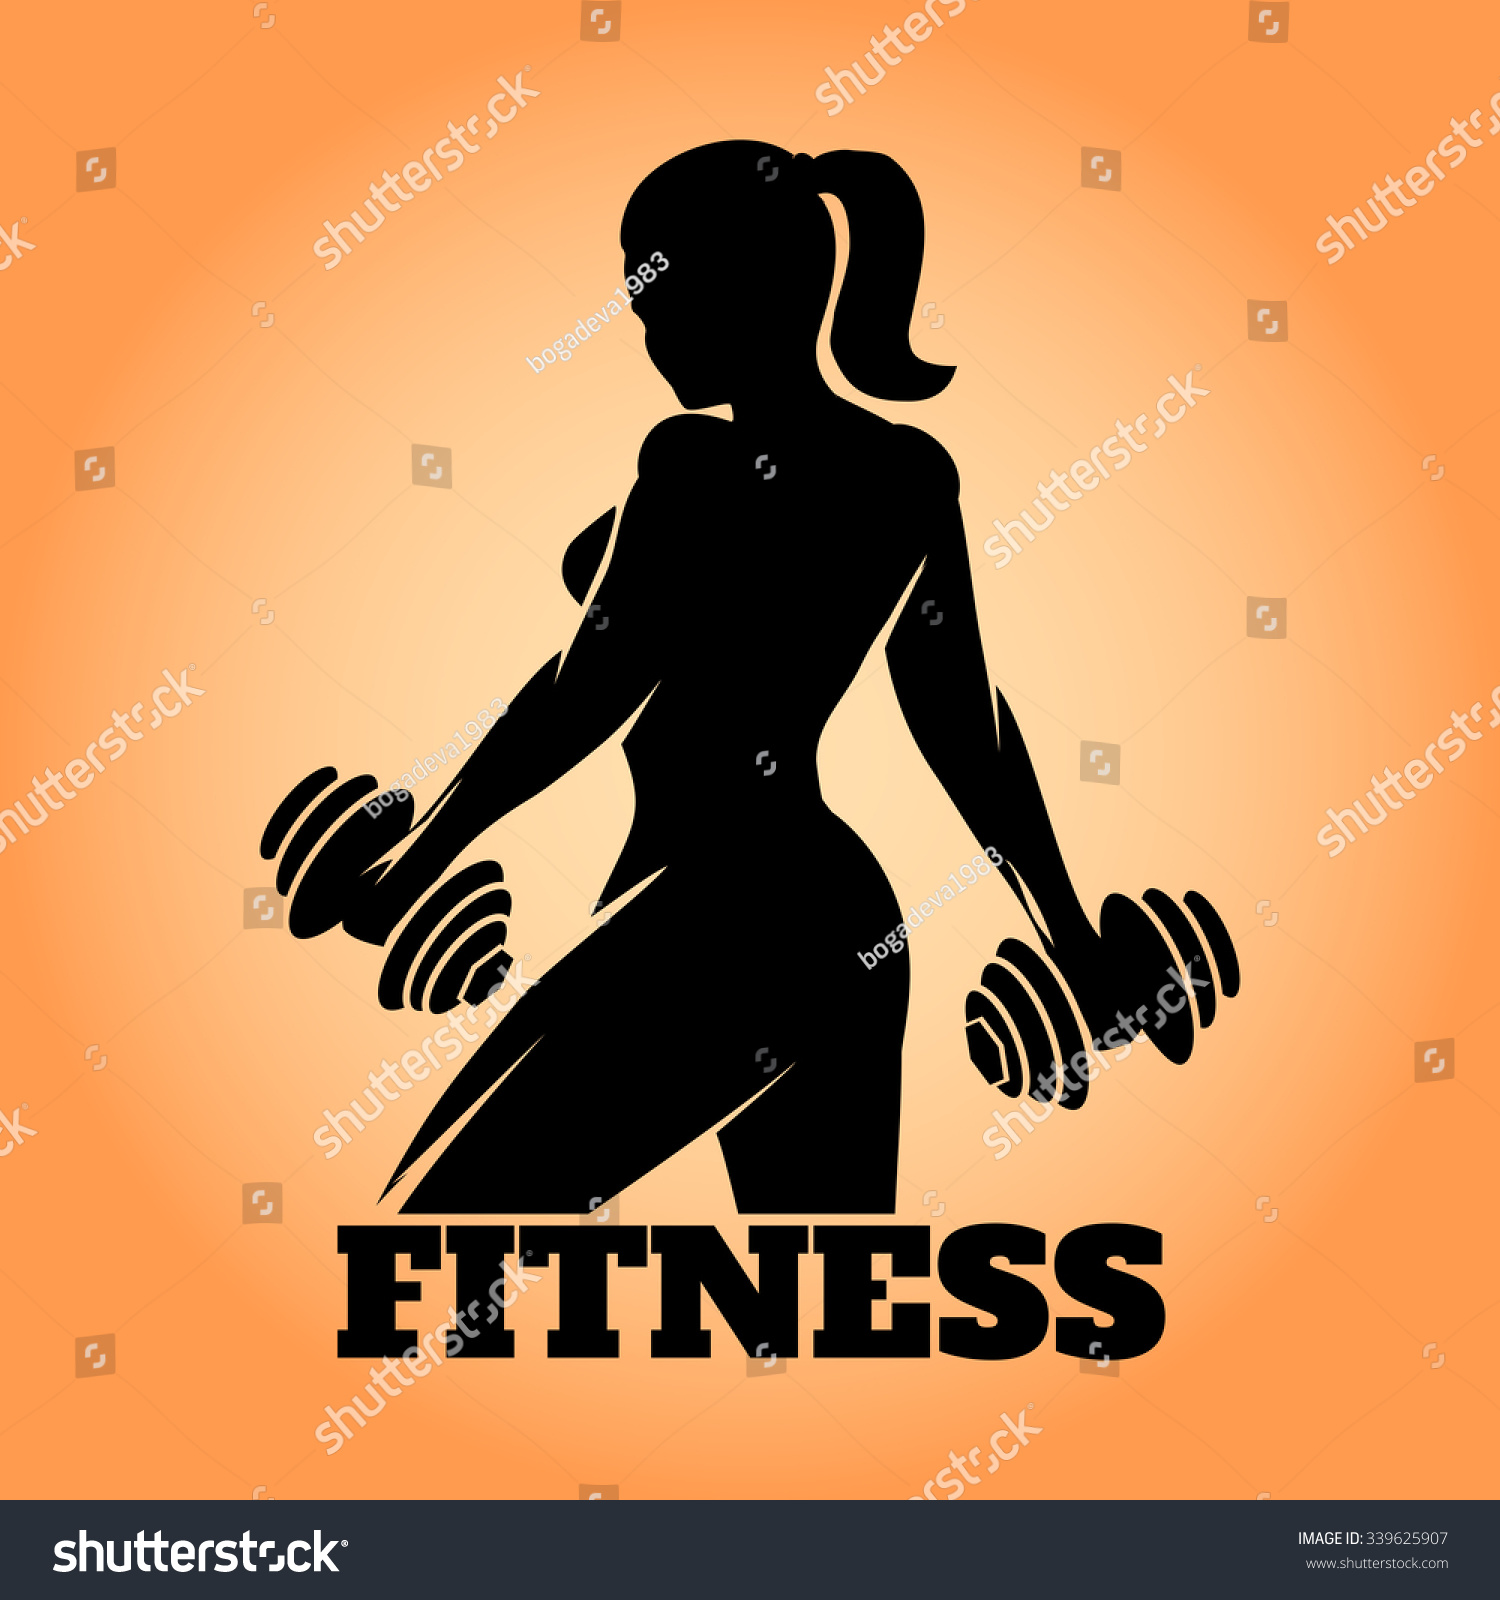 Poster design vector download - Fitness Club And Gym Banner Or Poster Design Silhouette Of Athletic Woman With Dumbbells